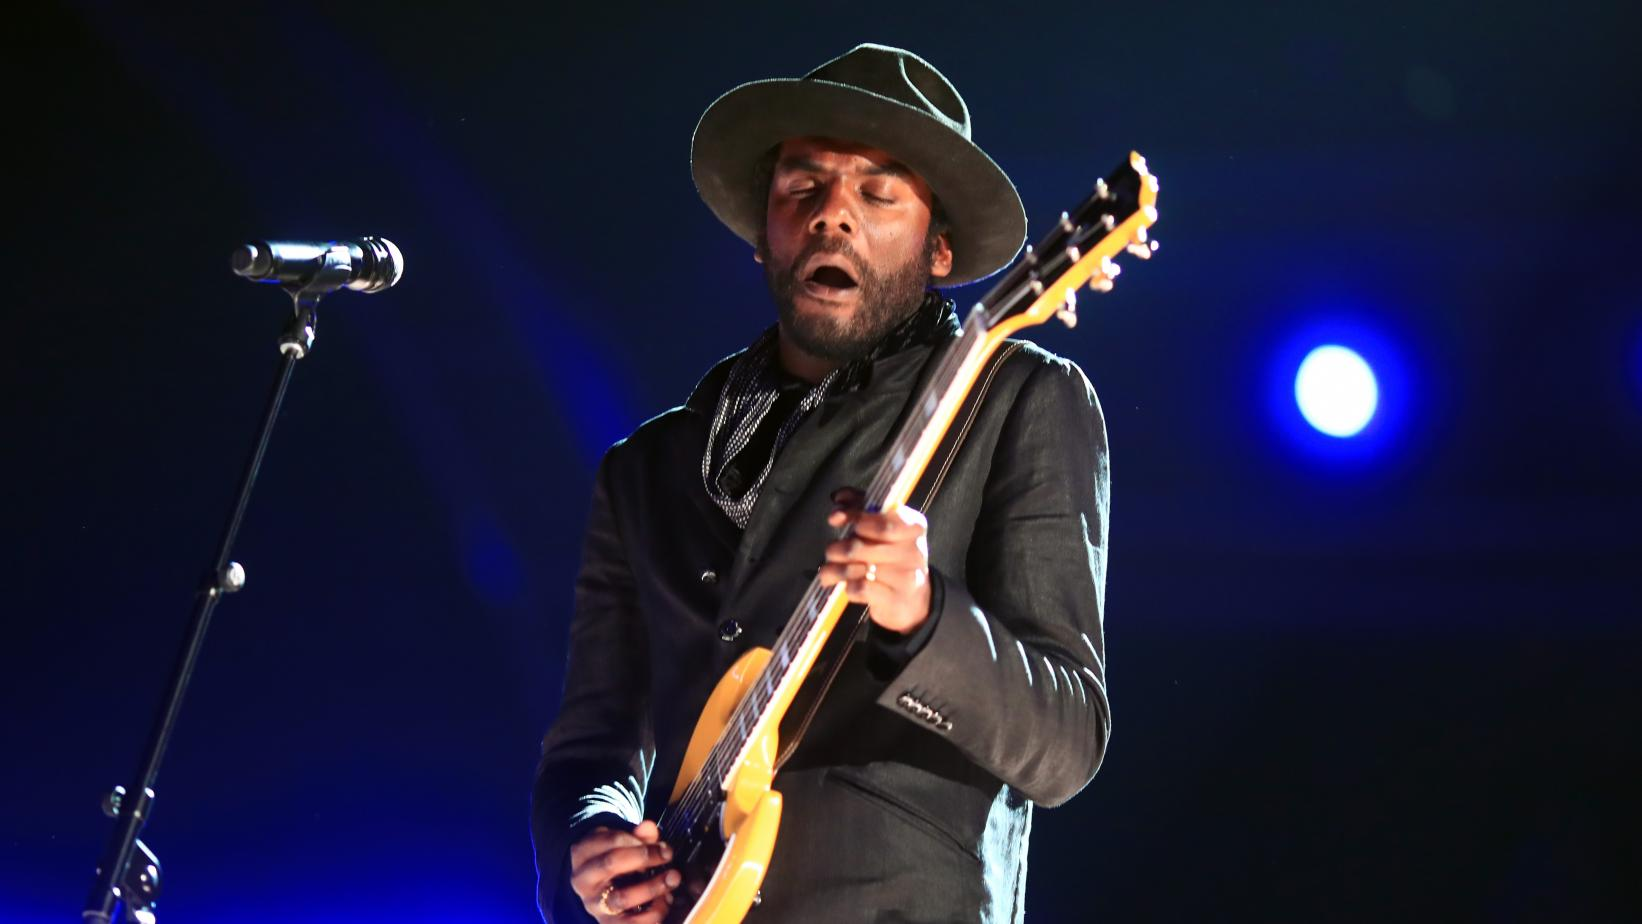 Gary Clark Jr. onstage at the 59th GRAMMYs in 2017